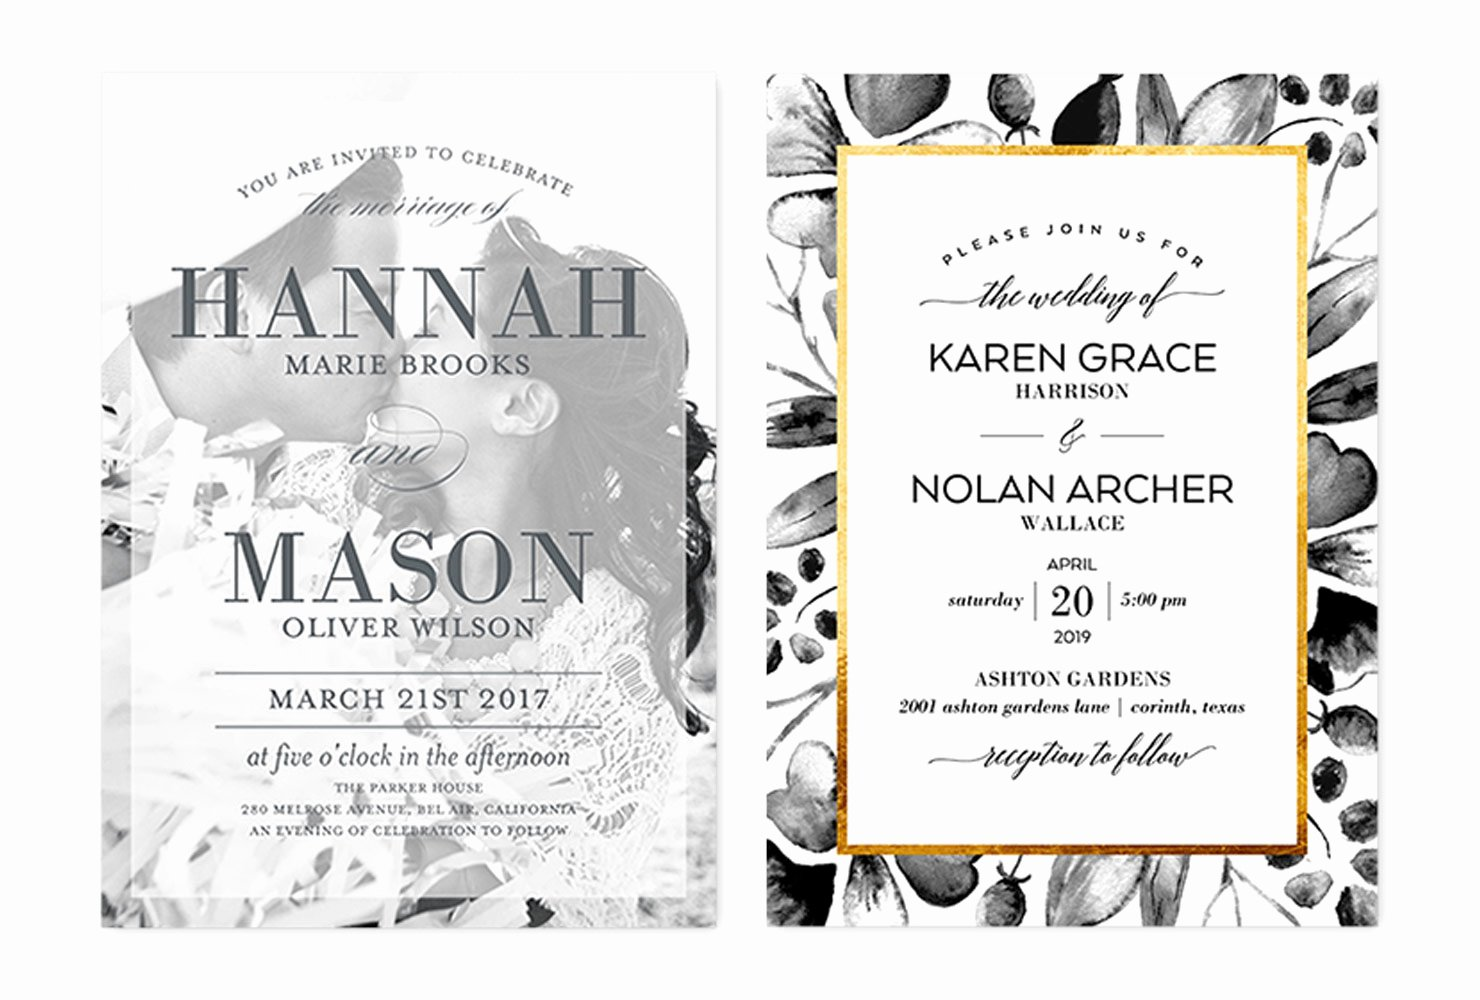 Wedding Invitation Wording Template Luxury 35 Wedding Invitation Wording Examples 2019